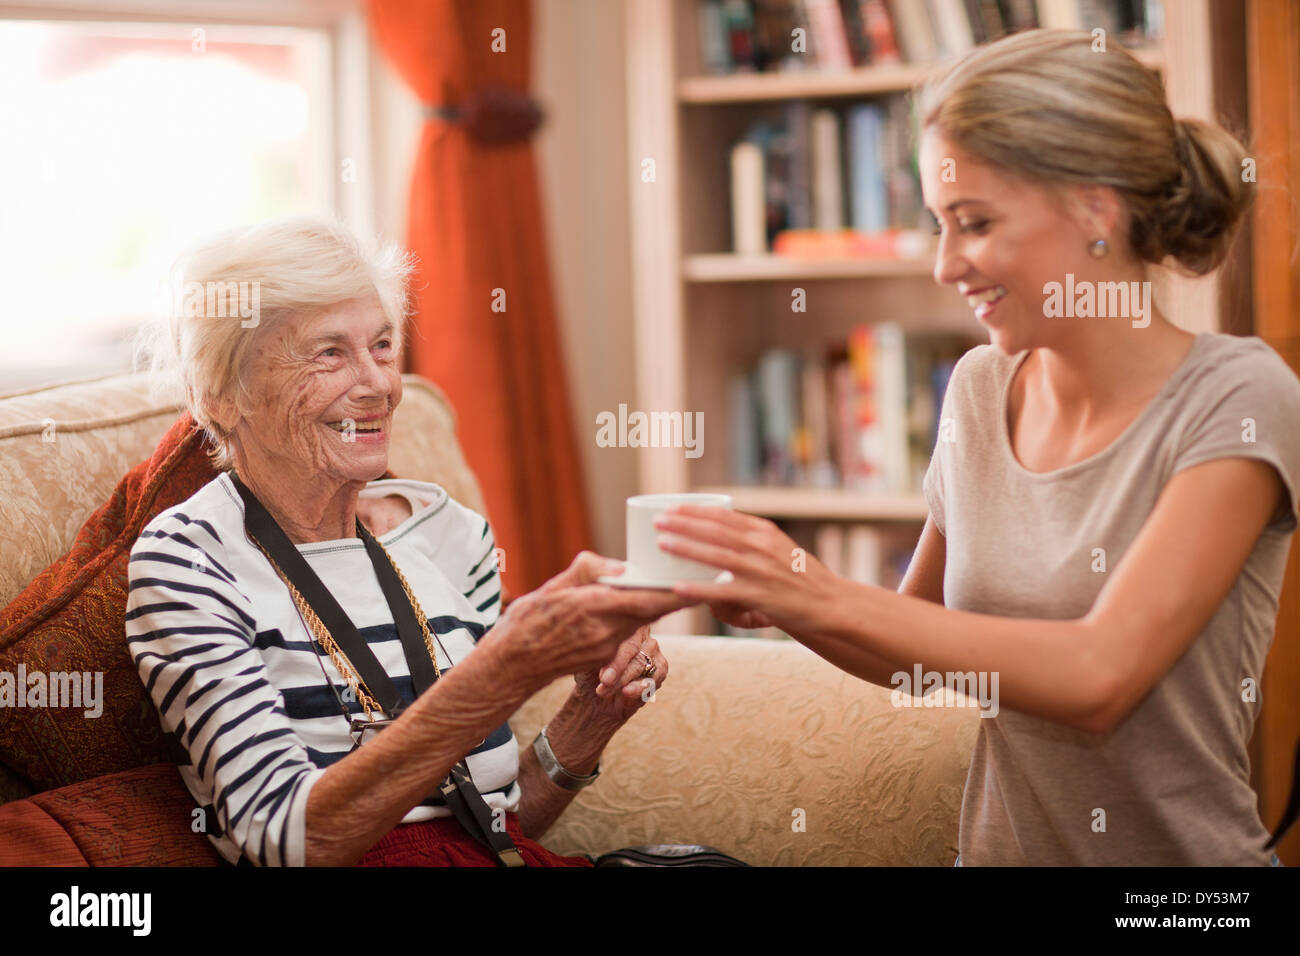 Care assistant handing coffee cup to senior woman - Stock Image